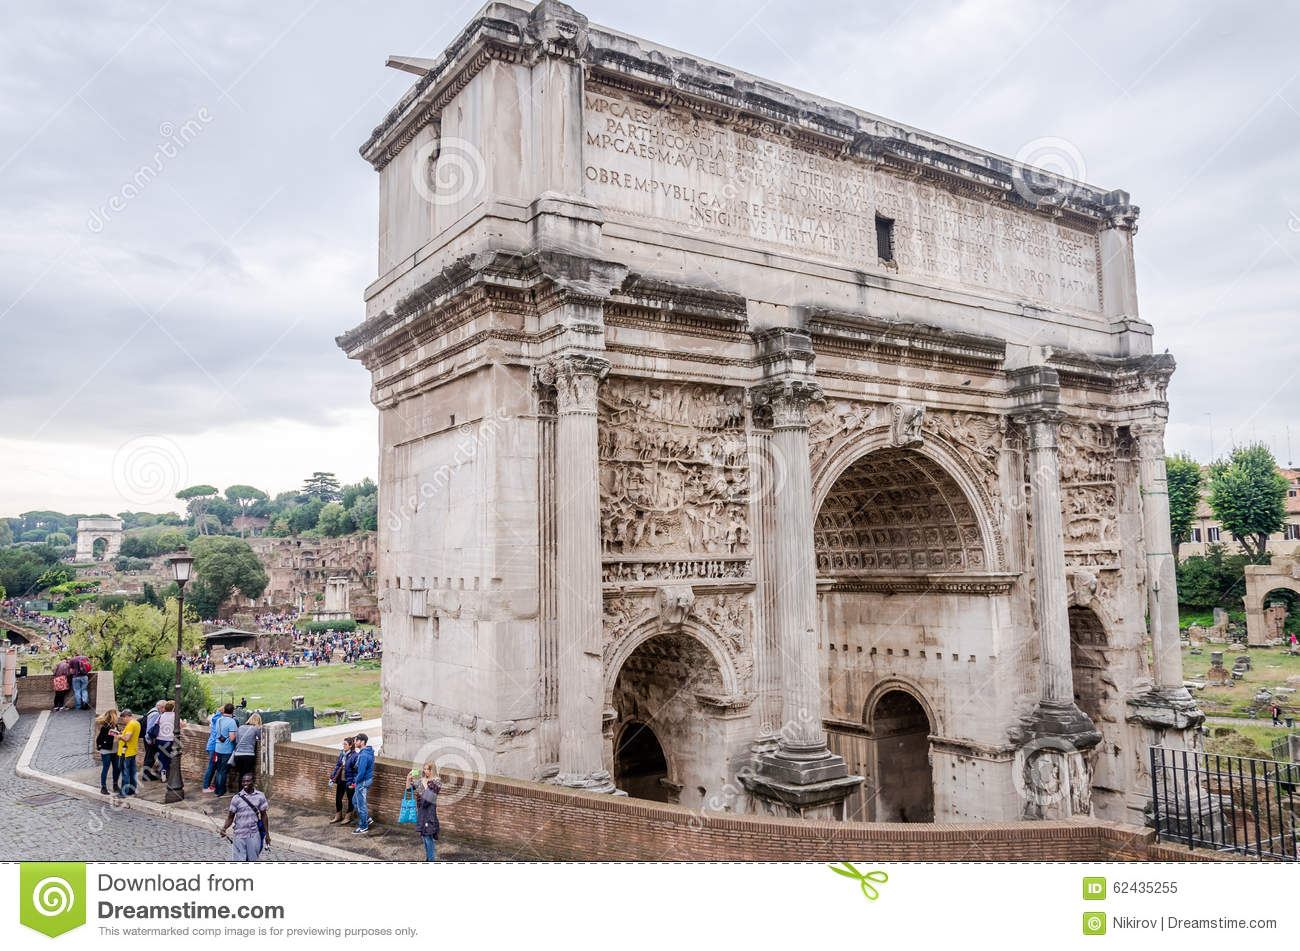 Tourists walk and take pictures in the photo on the tour of the ancient ruins of the ancient imperial capital of the Roman Forum a